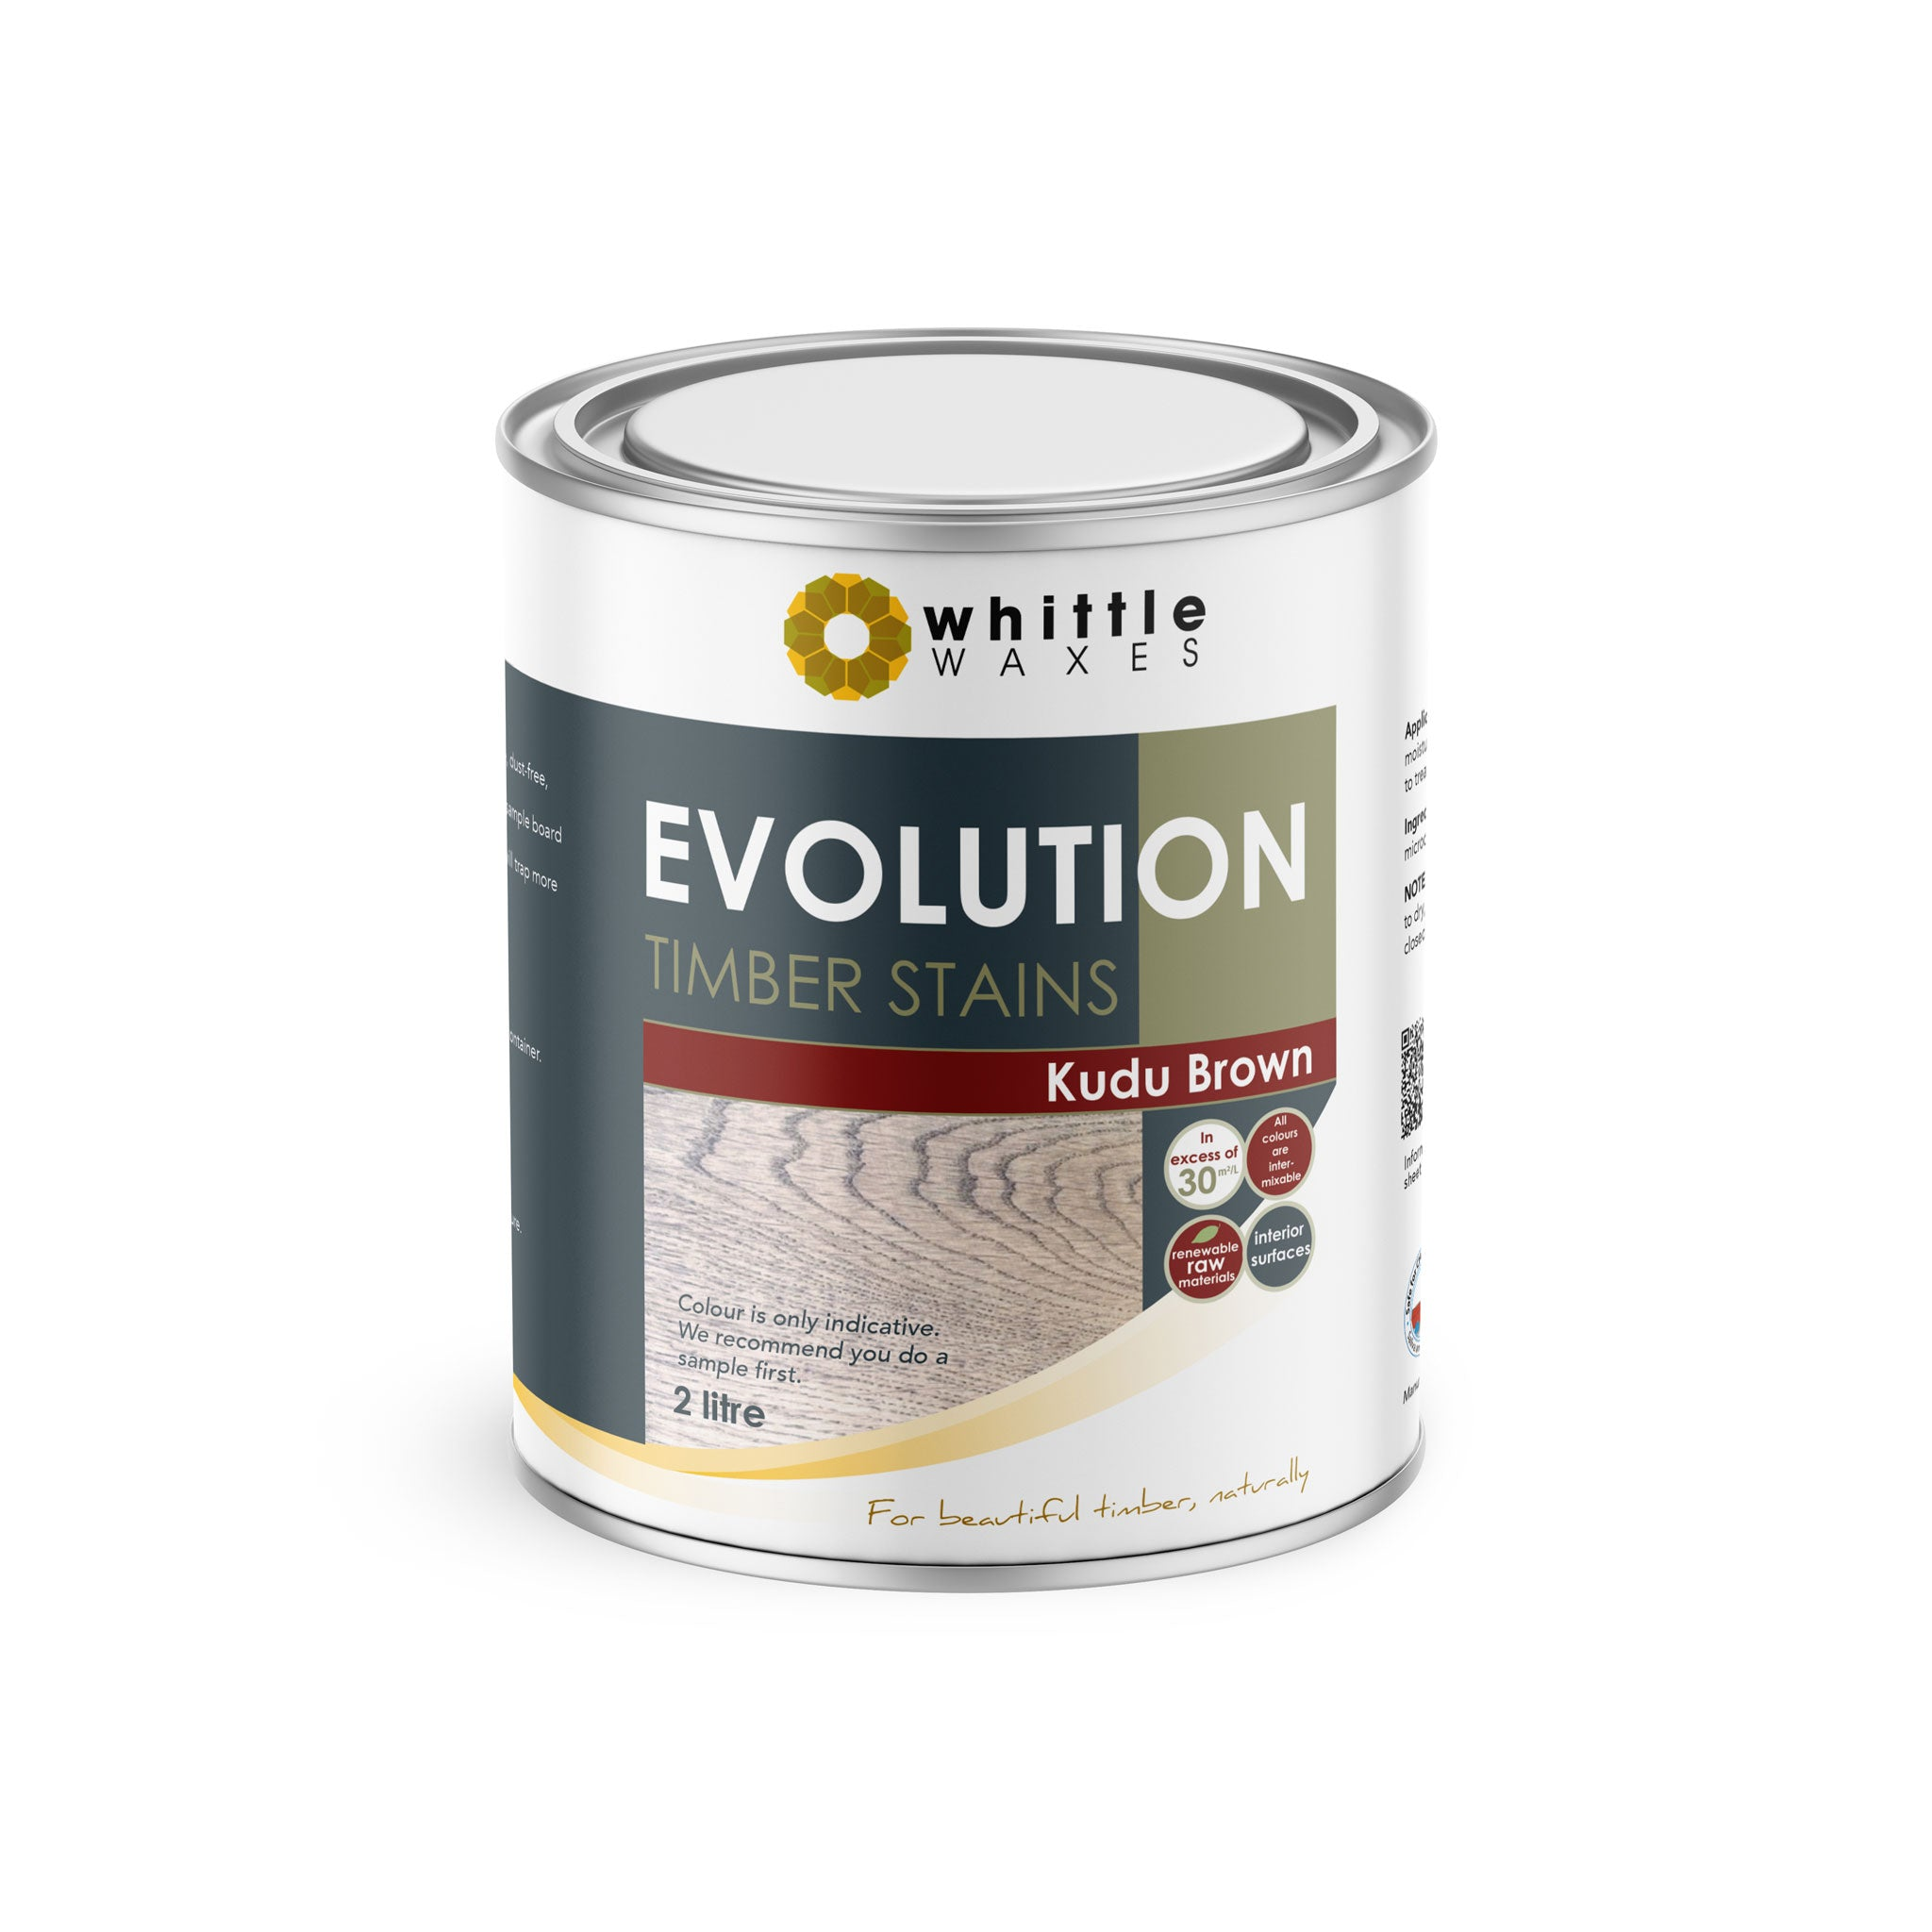 Whittle Waxes Evolution Colours (Kudu Brown) - quality timber stain - 2 Litre